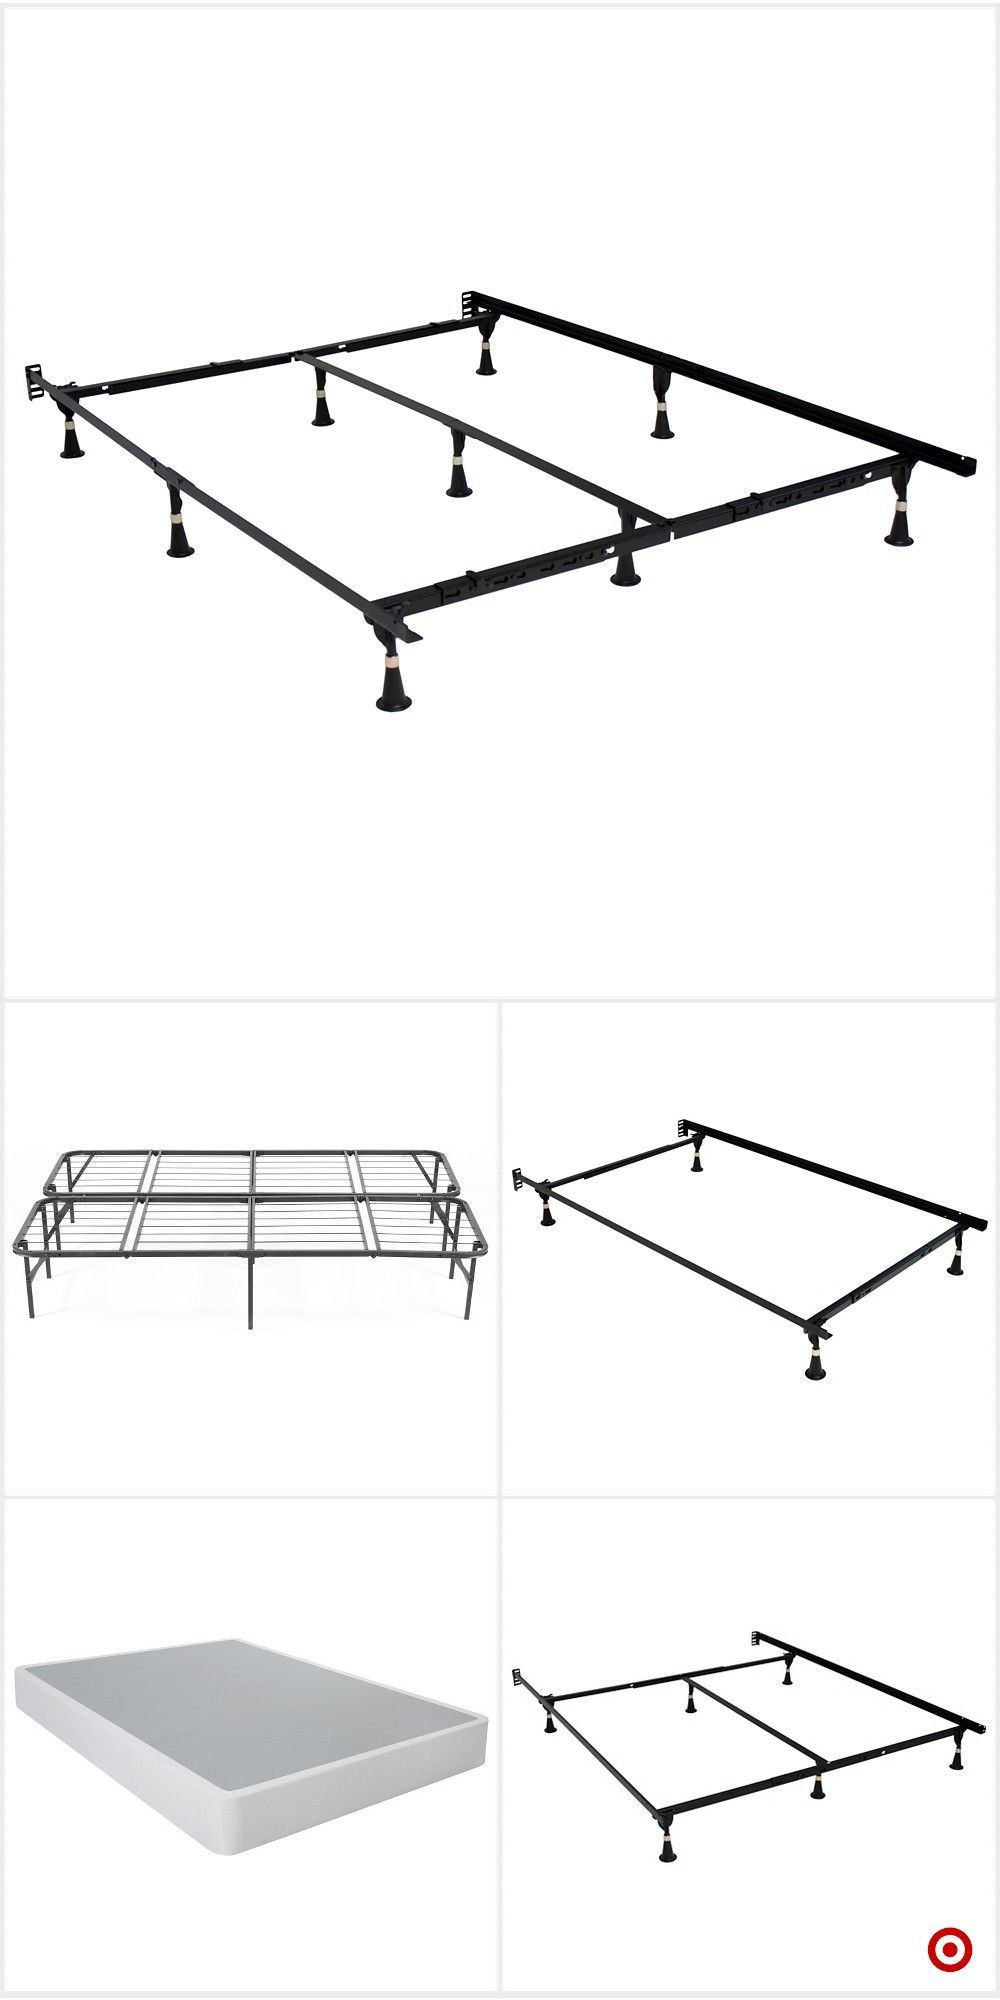 Luggage Rack Target Inspiration Shop Target For Bed Frame You Will Love At Great Low Pricesfree Decorating Inspiration